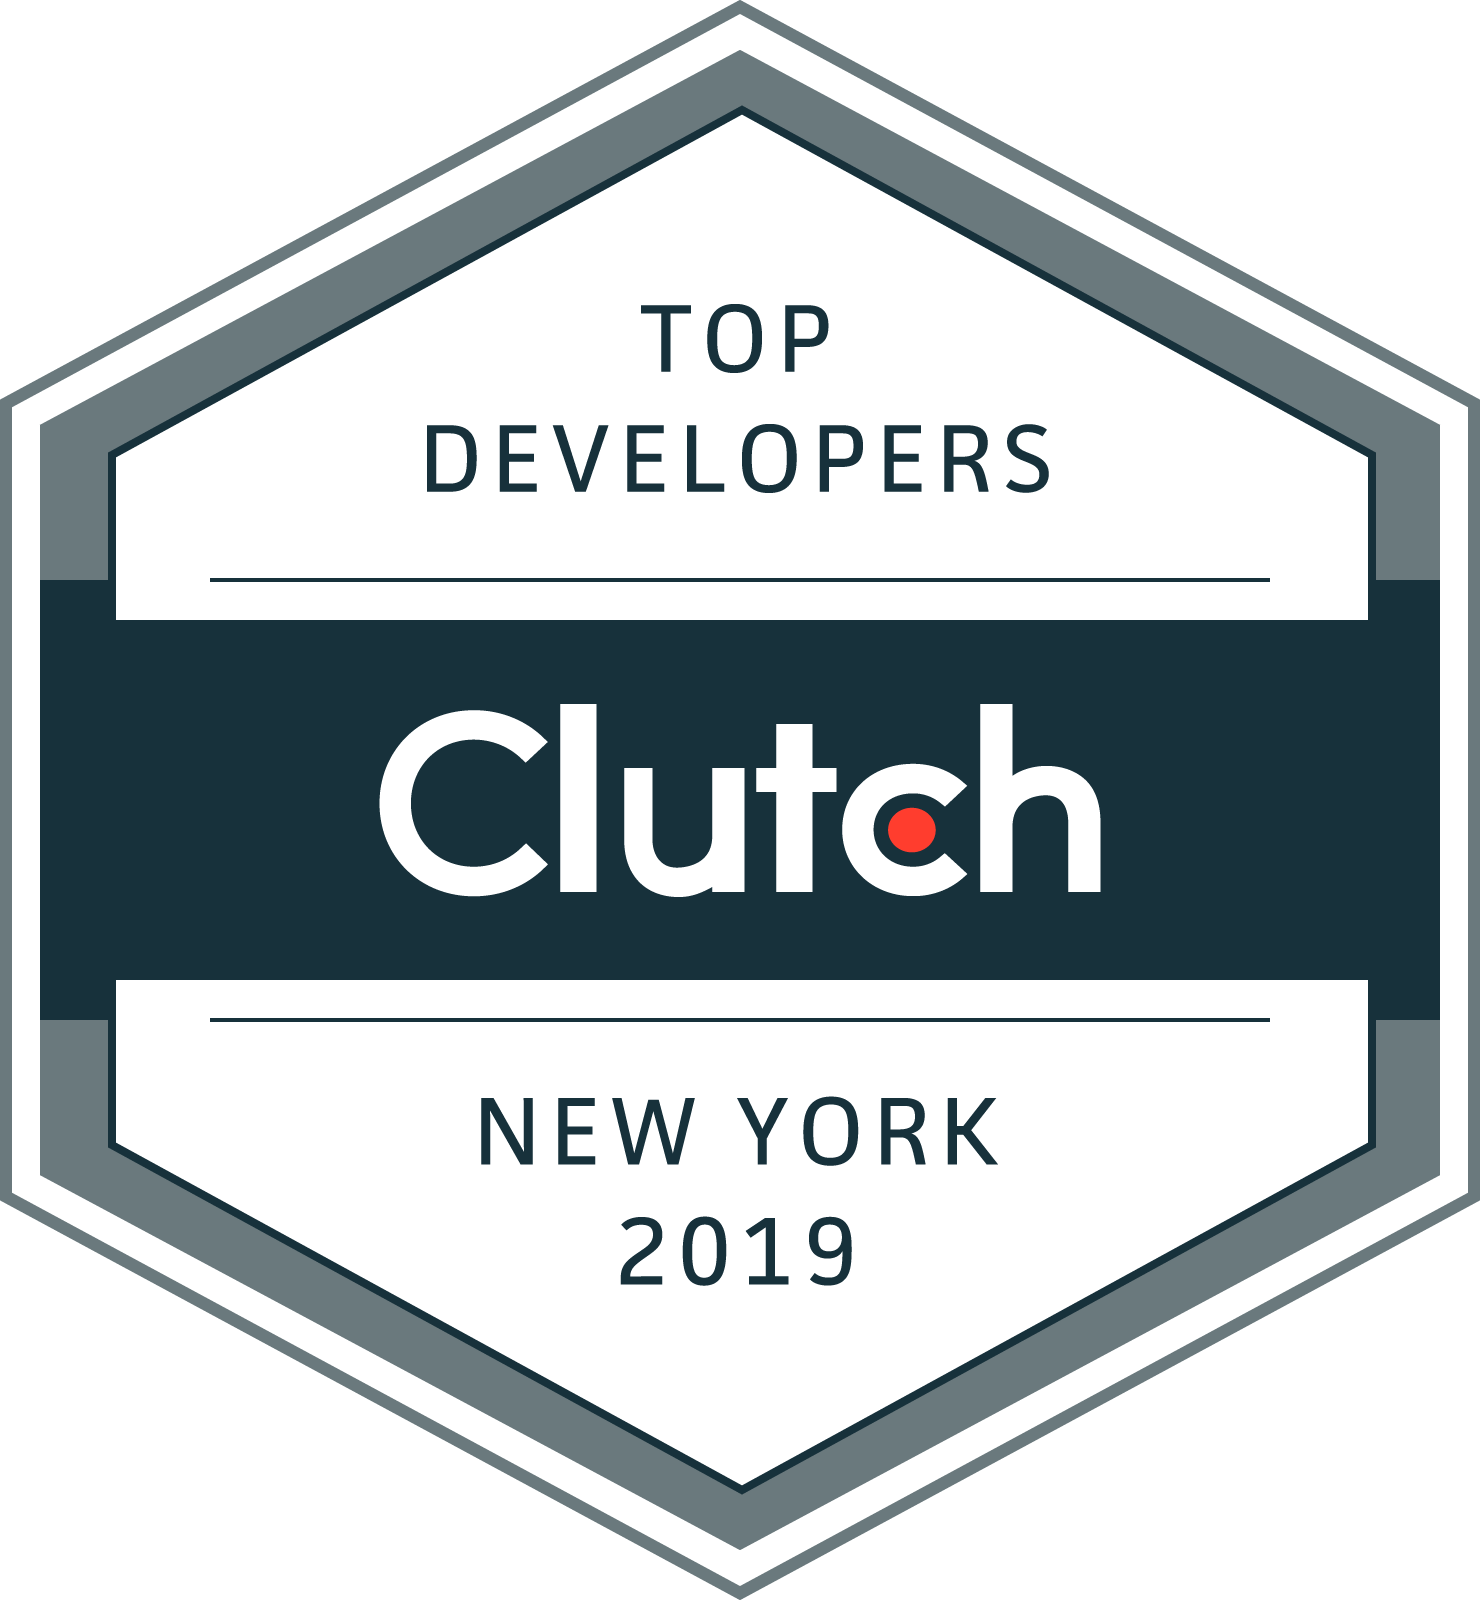 wildcard is a recognized software development agency here in NY!